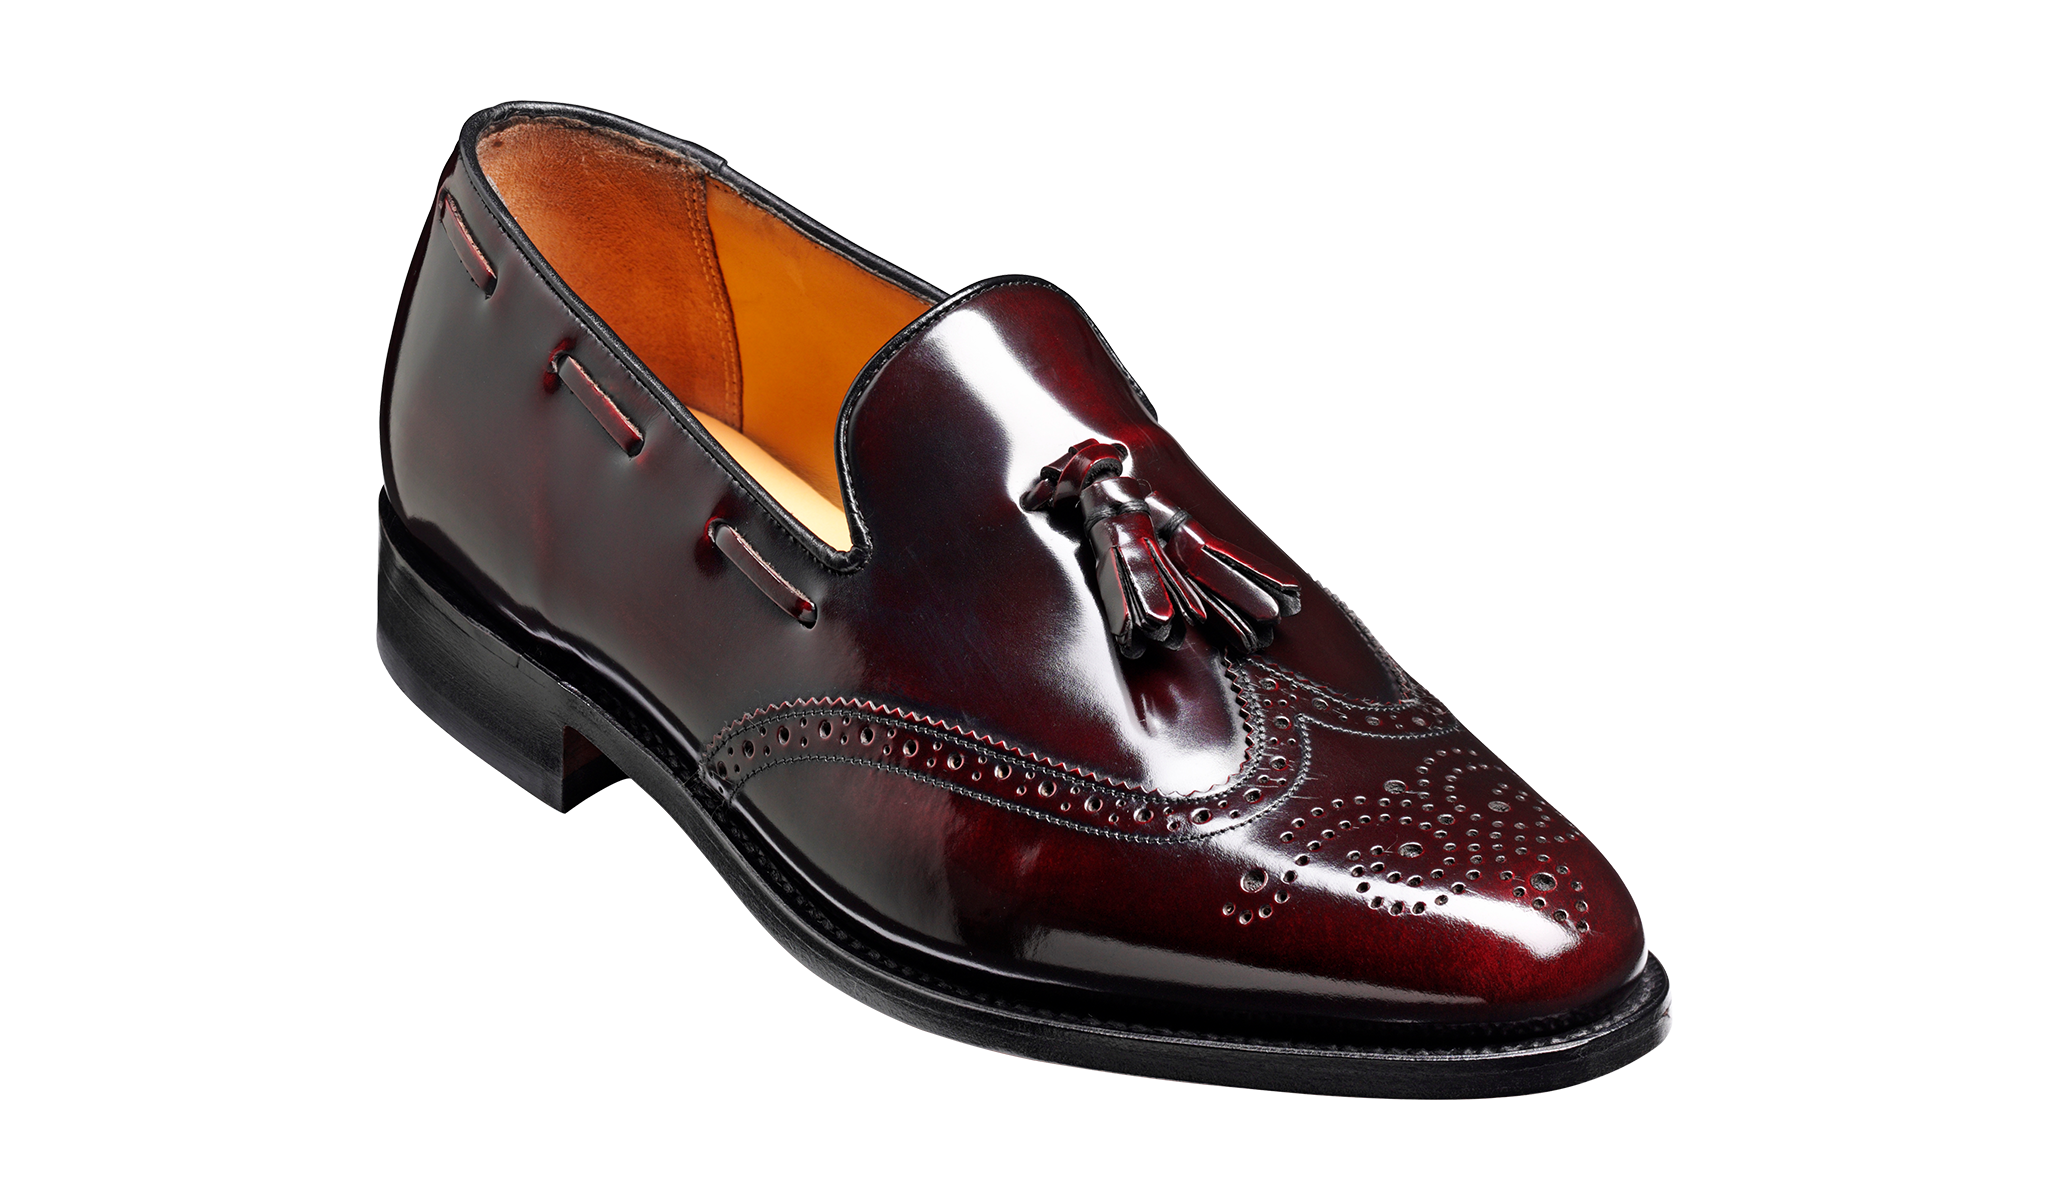 Clive - A men's loafer by Barker Shoes.